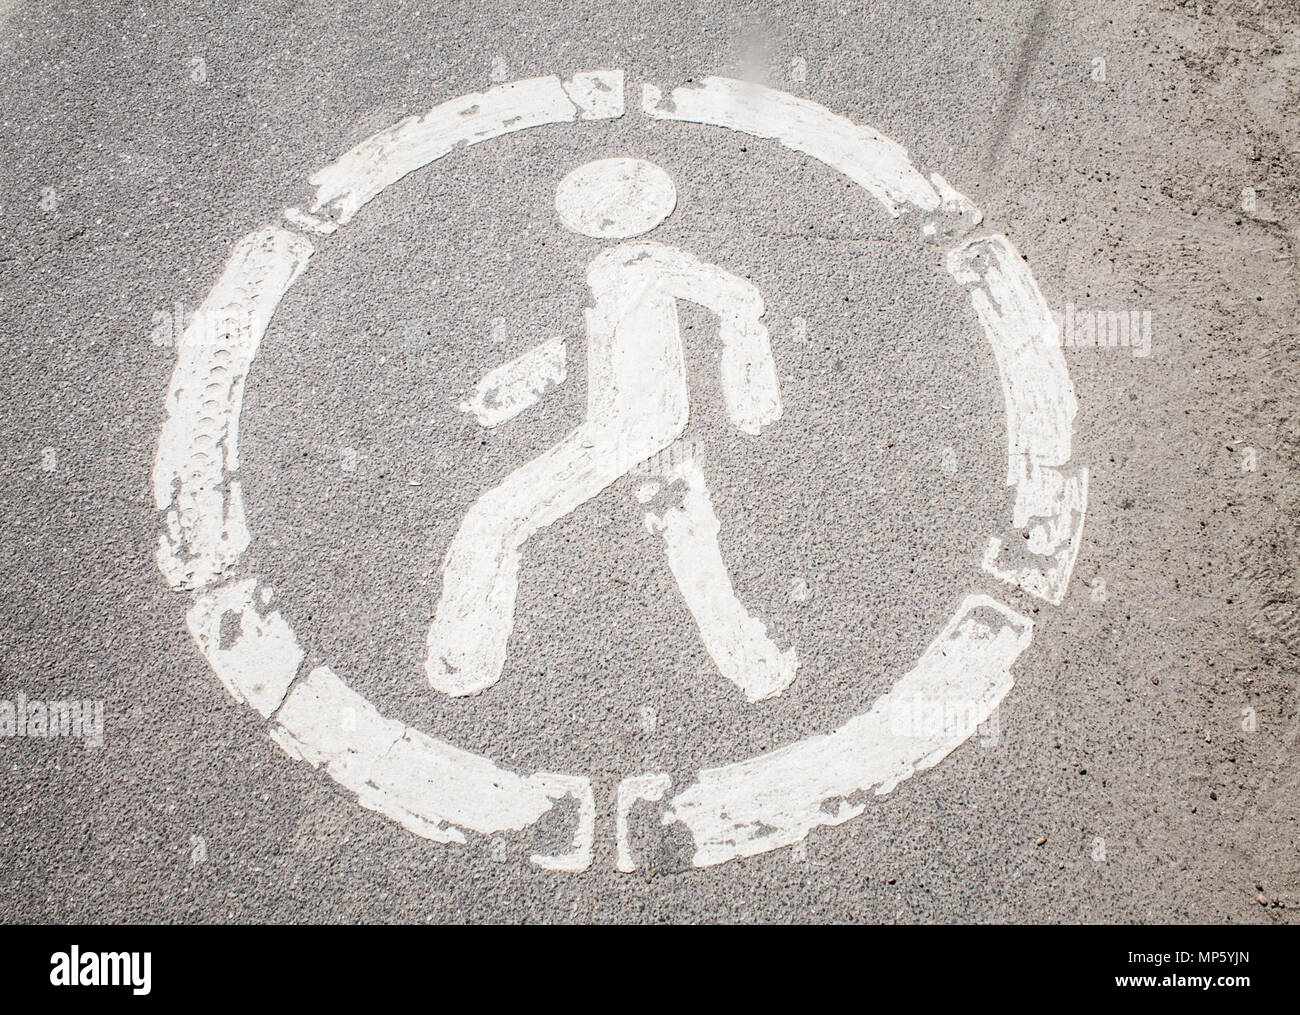 The Symbol Of Man Walking In A Circle On The Asphalt Stock Photo